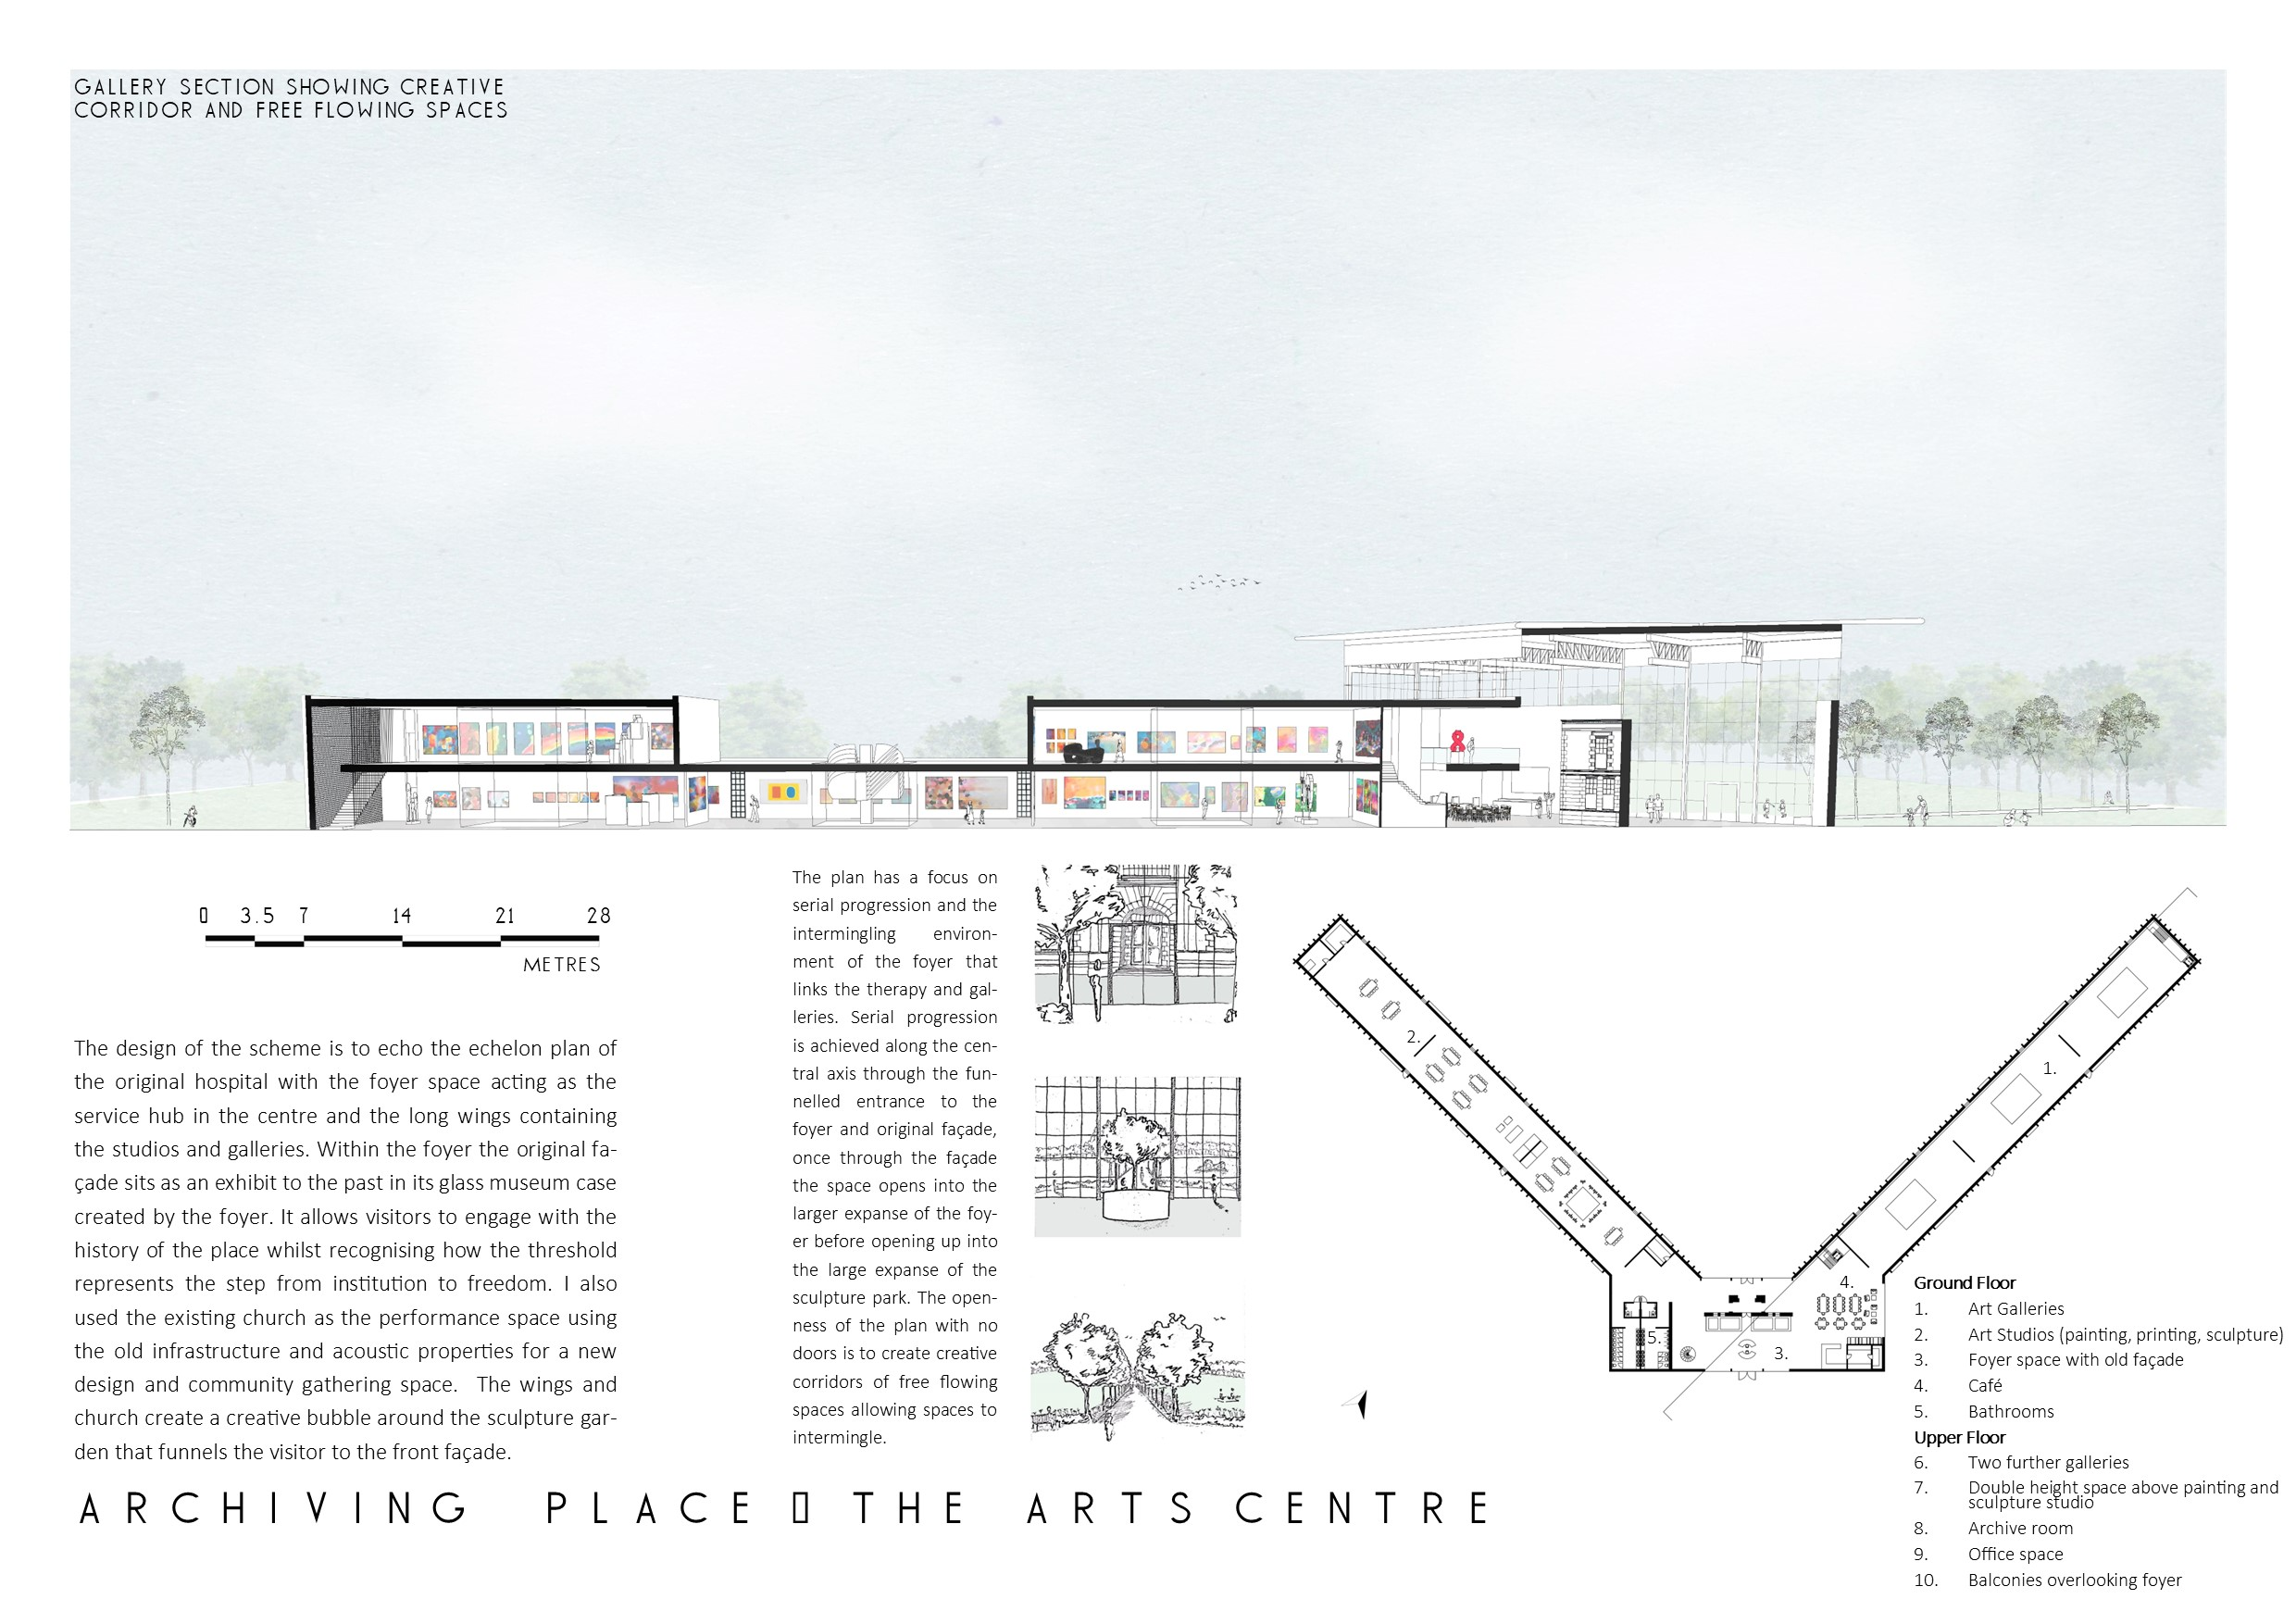 Portfolio Page of the arts centre, with a plan and perspective section of the art centre that echoes the echelon plan of the original hospital.